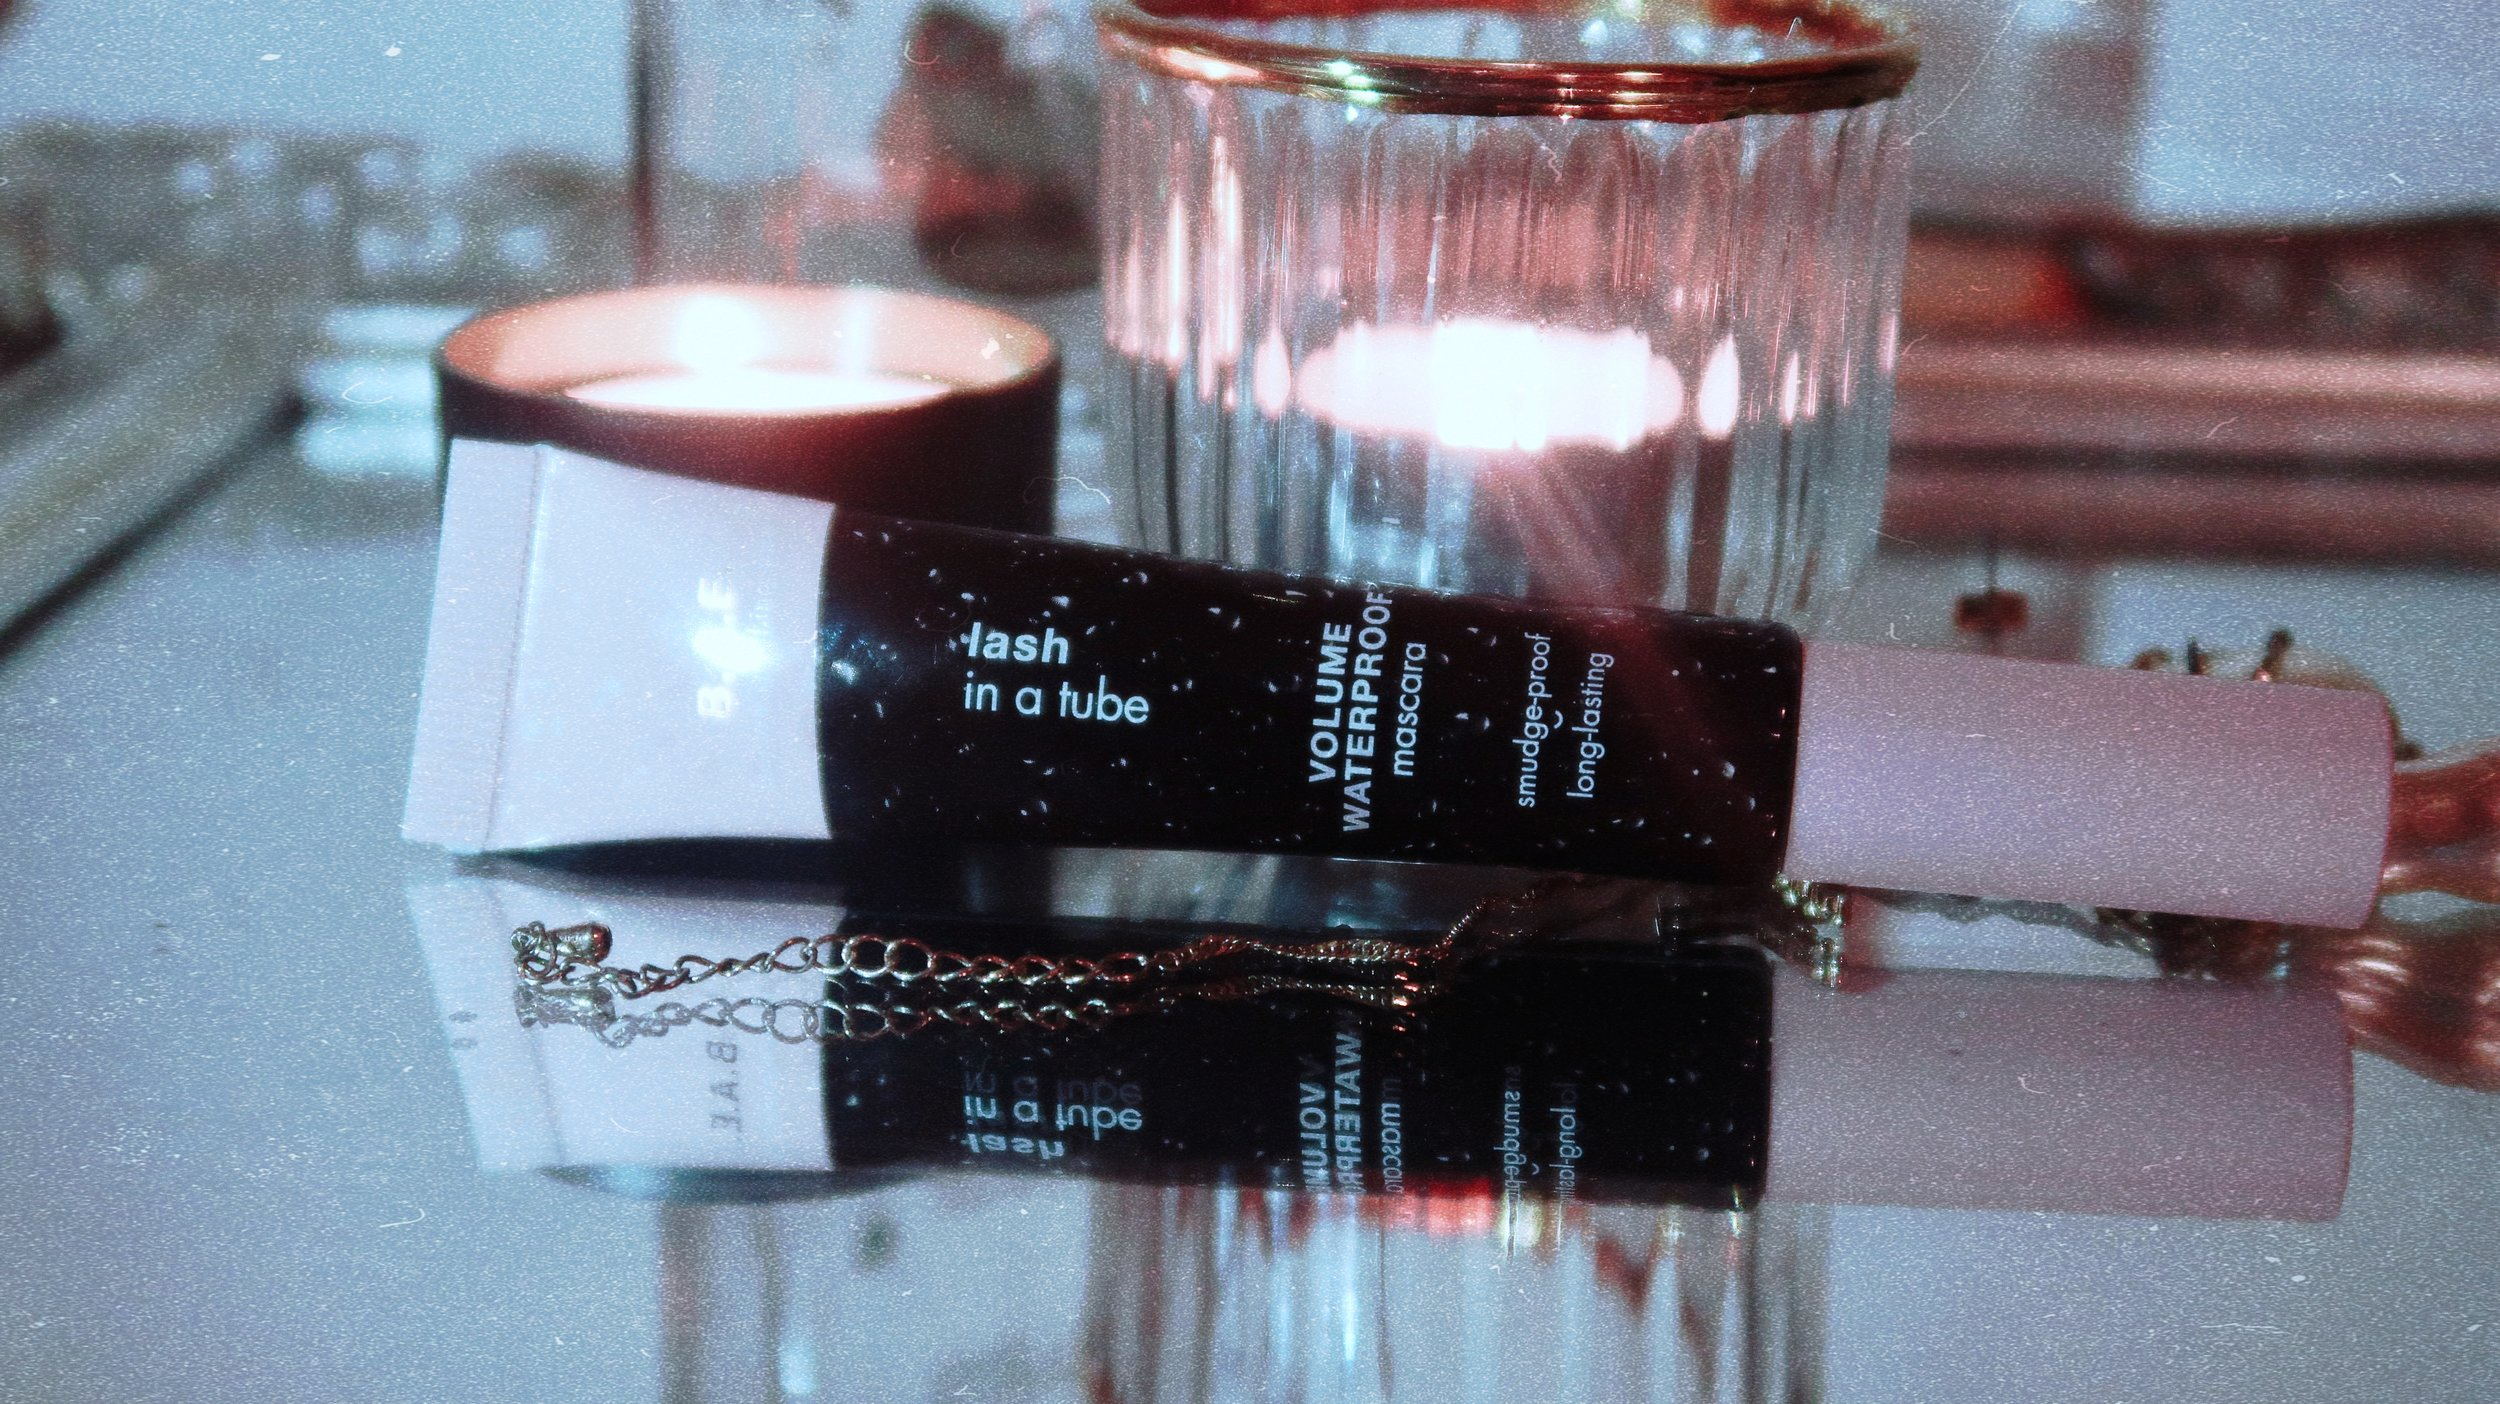 B.A.E. Lash in a tube - Product description: Volume waterproof mascara in a tube, smudge proof, long lasting, ophthalmology tested.